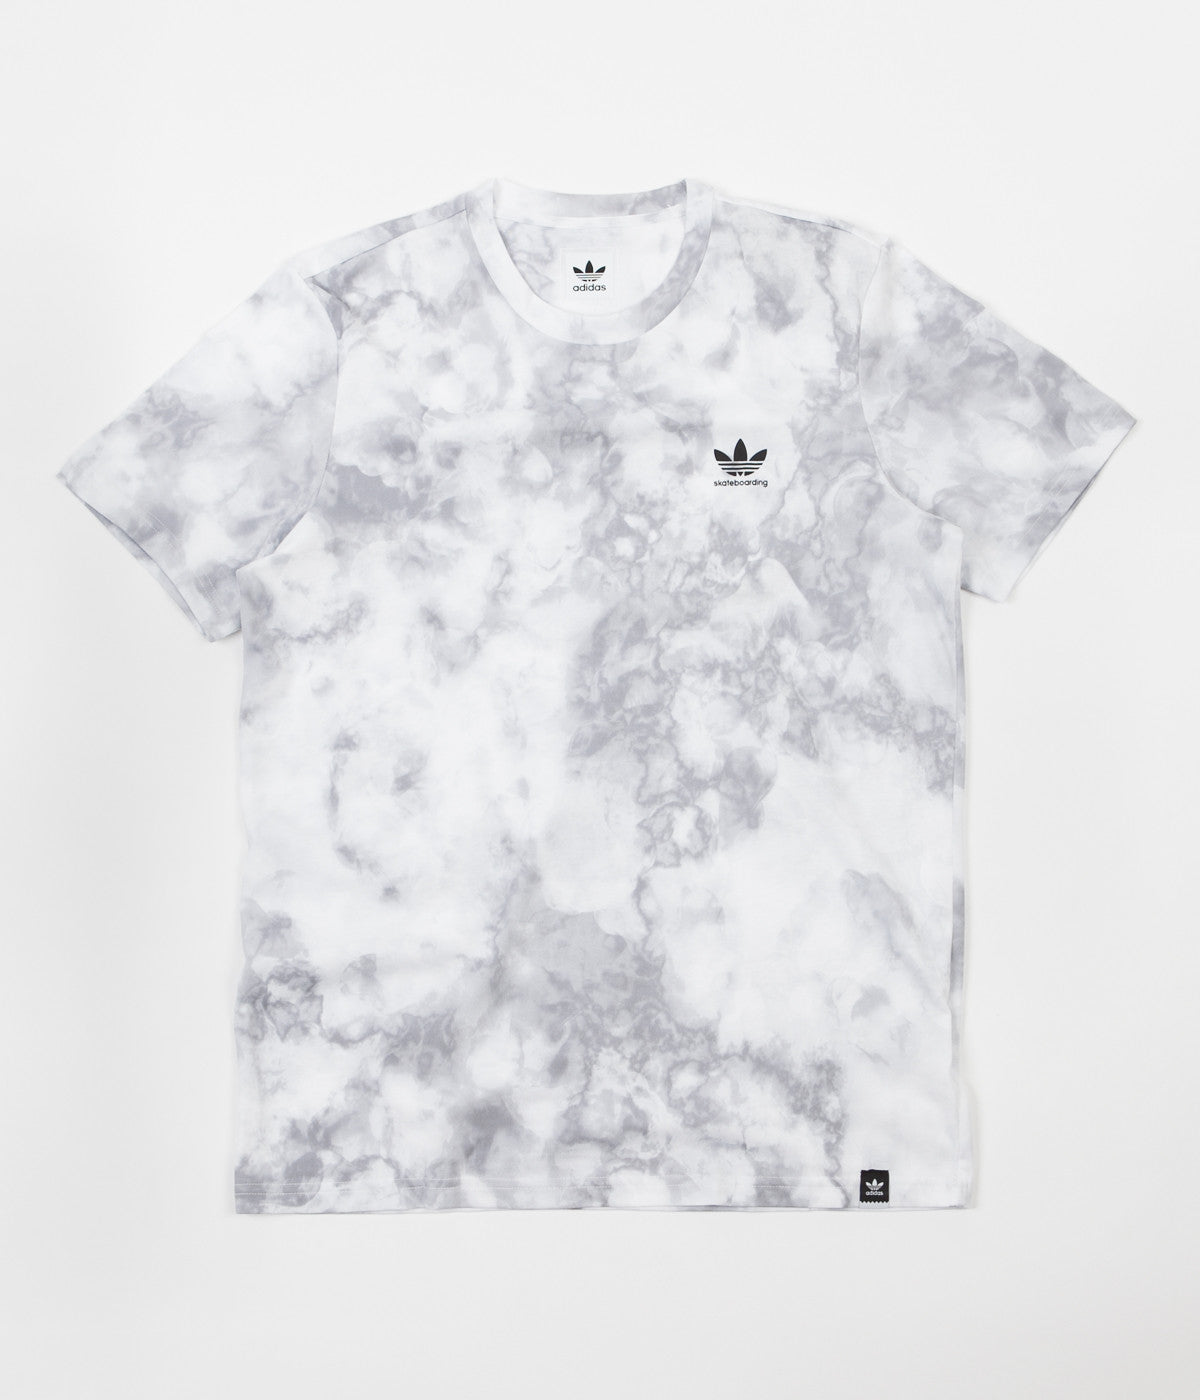 Adidas Quartz 2.0 T-Shirt - White / Clear Grey